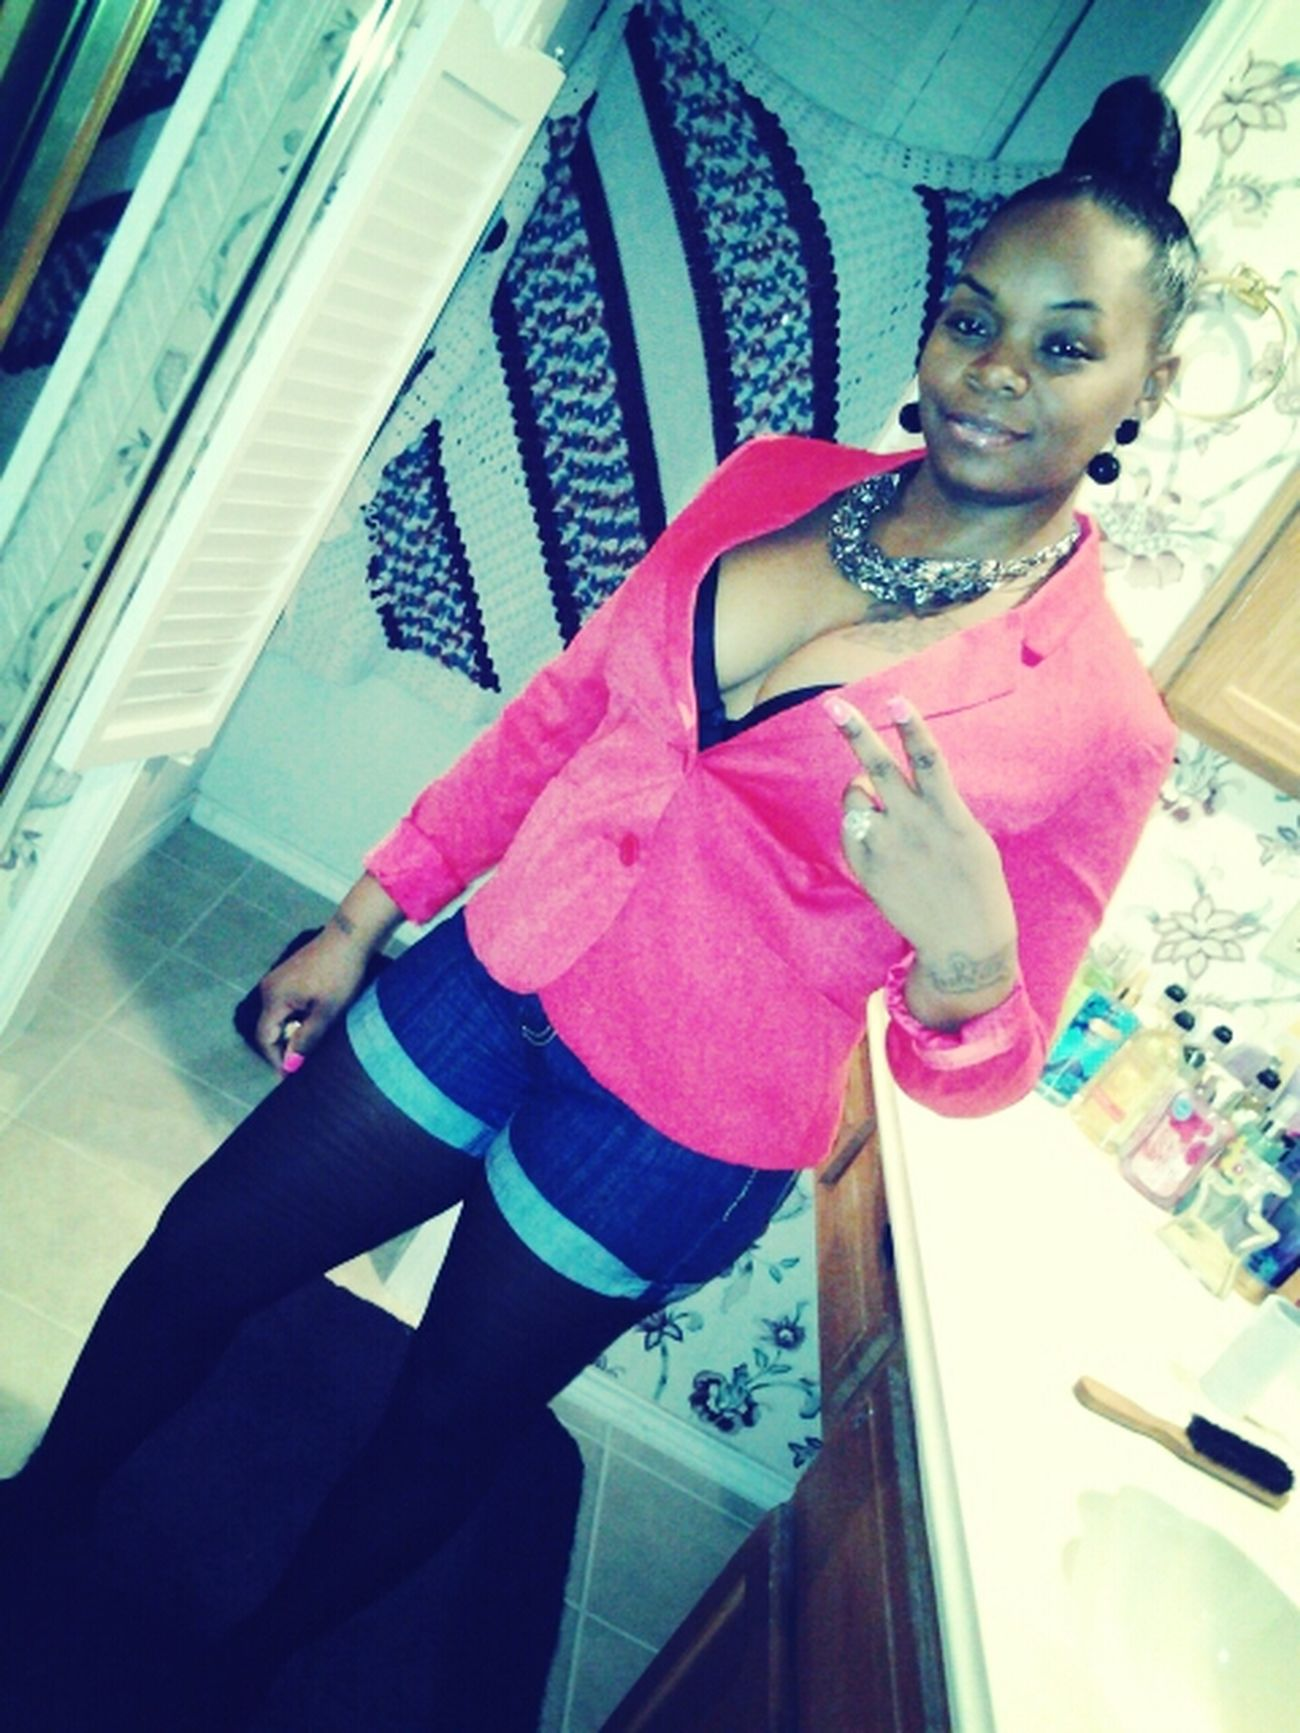 My Momma Kllnn Summ <3